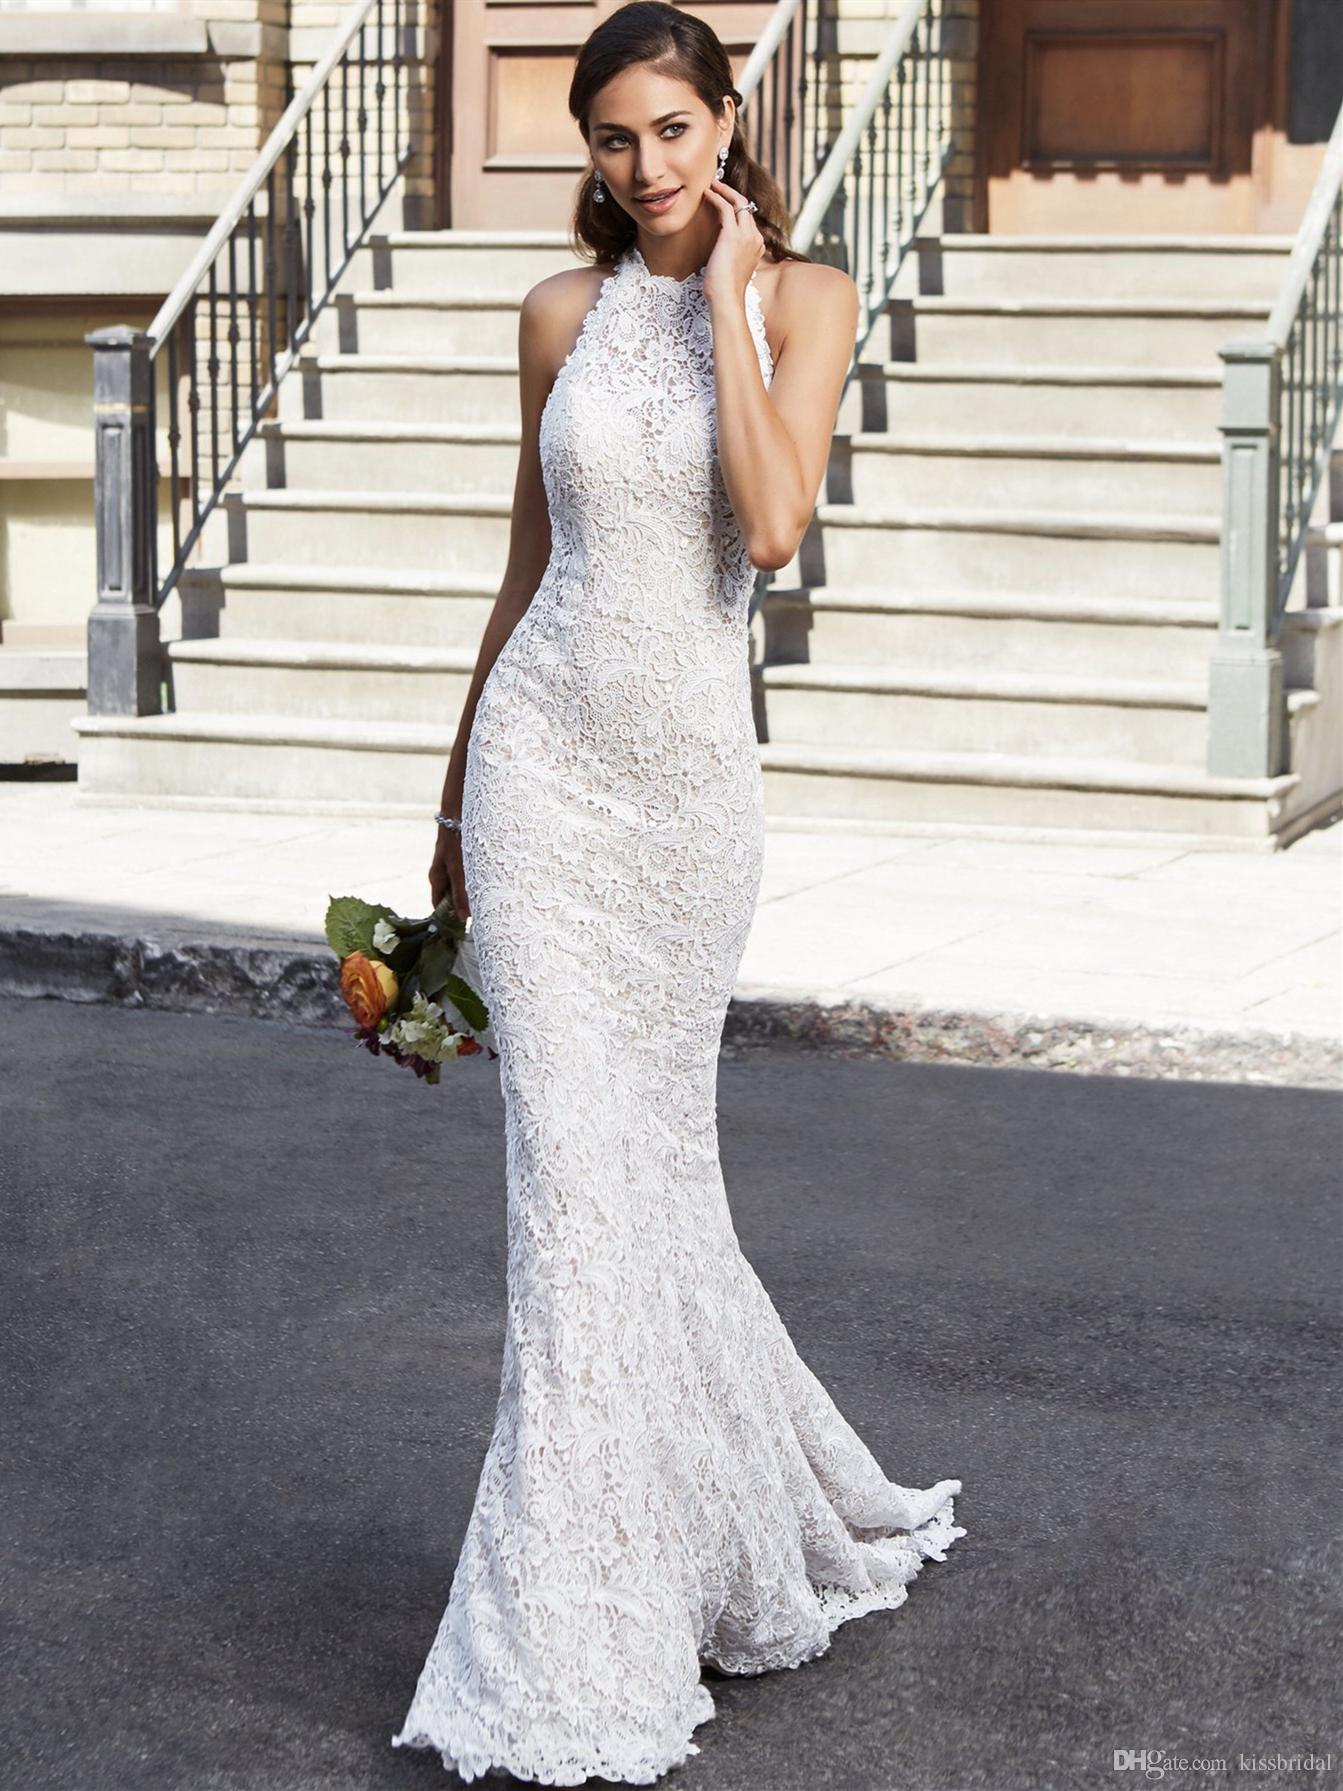 Elegant Mermaid Lace Wedding Dresses 2019 New Jewel Neck Backless Bridal Formal Gowns Vestidos De Noiva Silk Mermaid Wedding Dress Silk Mermaid